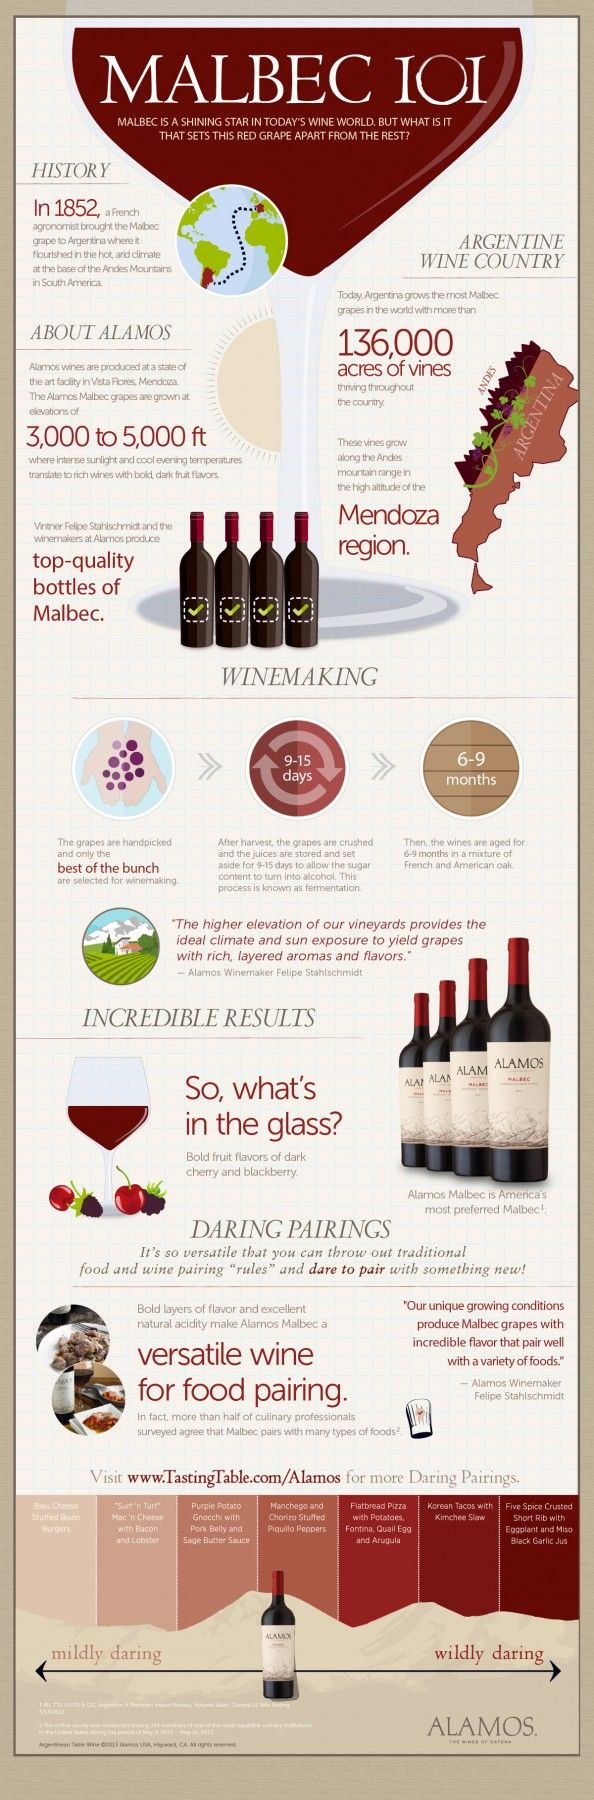 Malbec 101 Infographic | What sets this red grape apart from the rest?